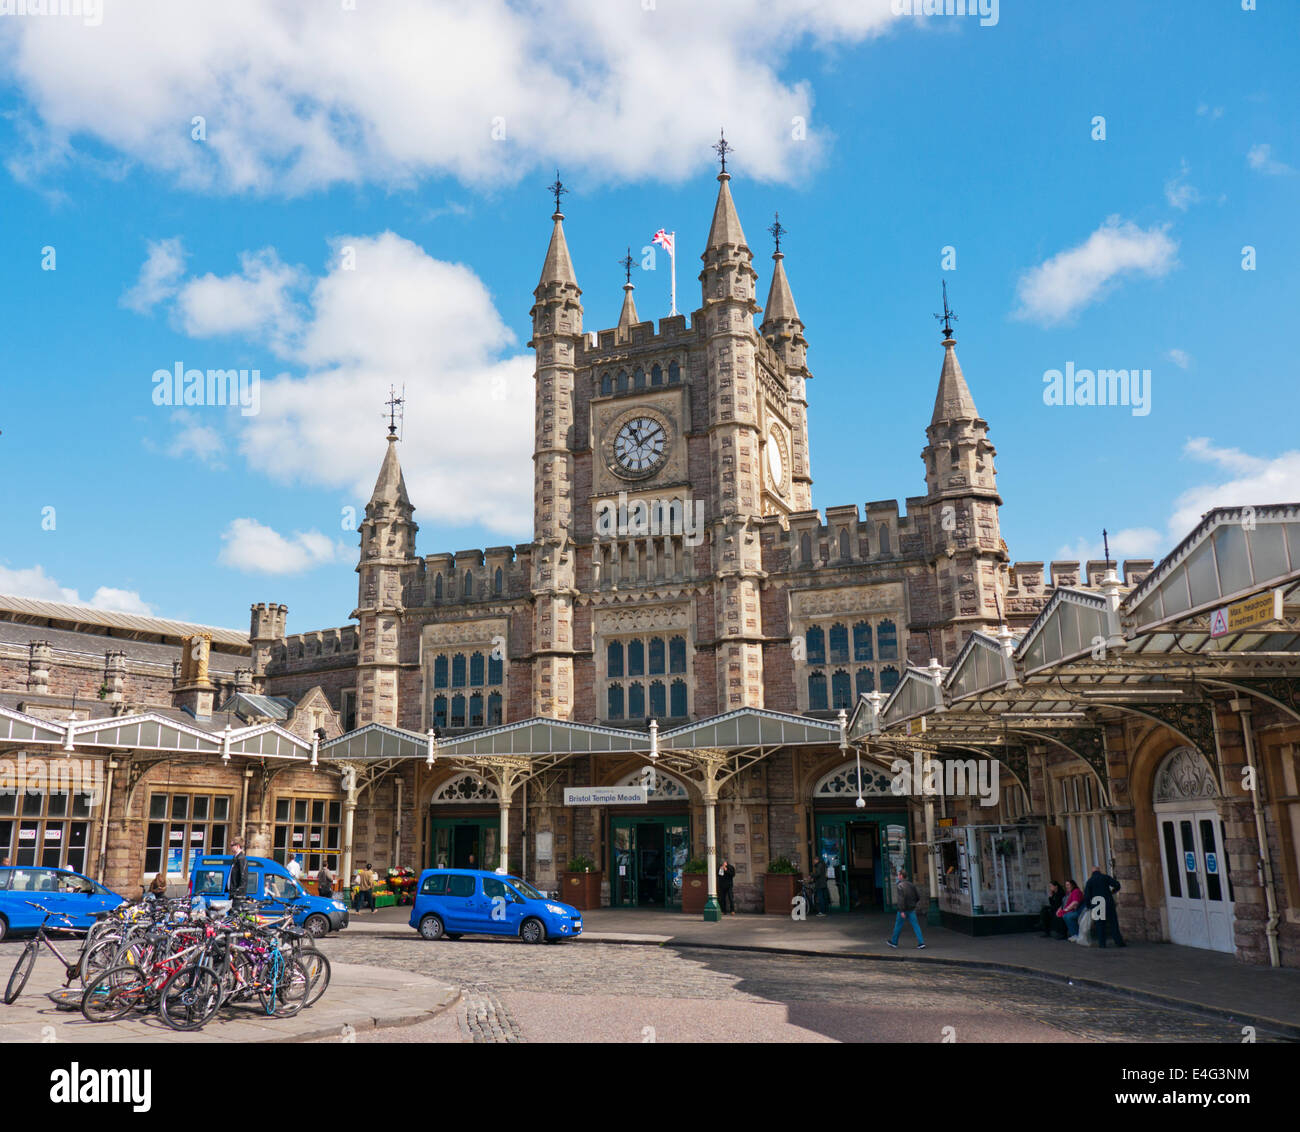 Bristol Temple Meads railway station in Britain Stock Photo